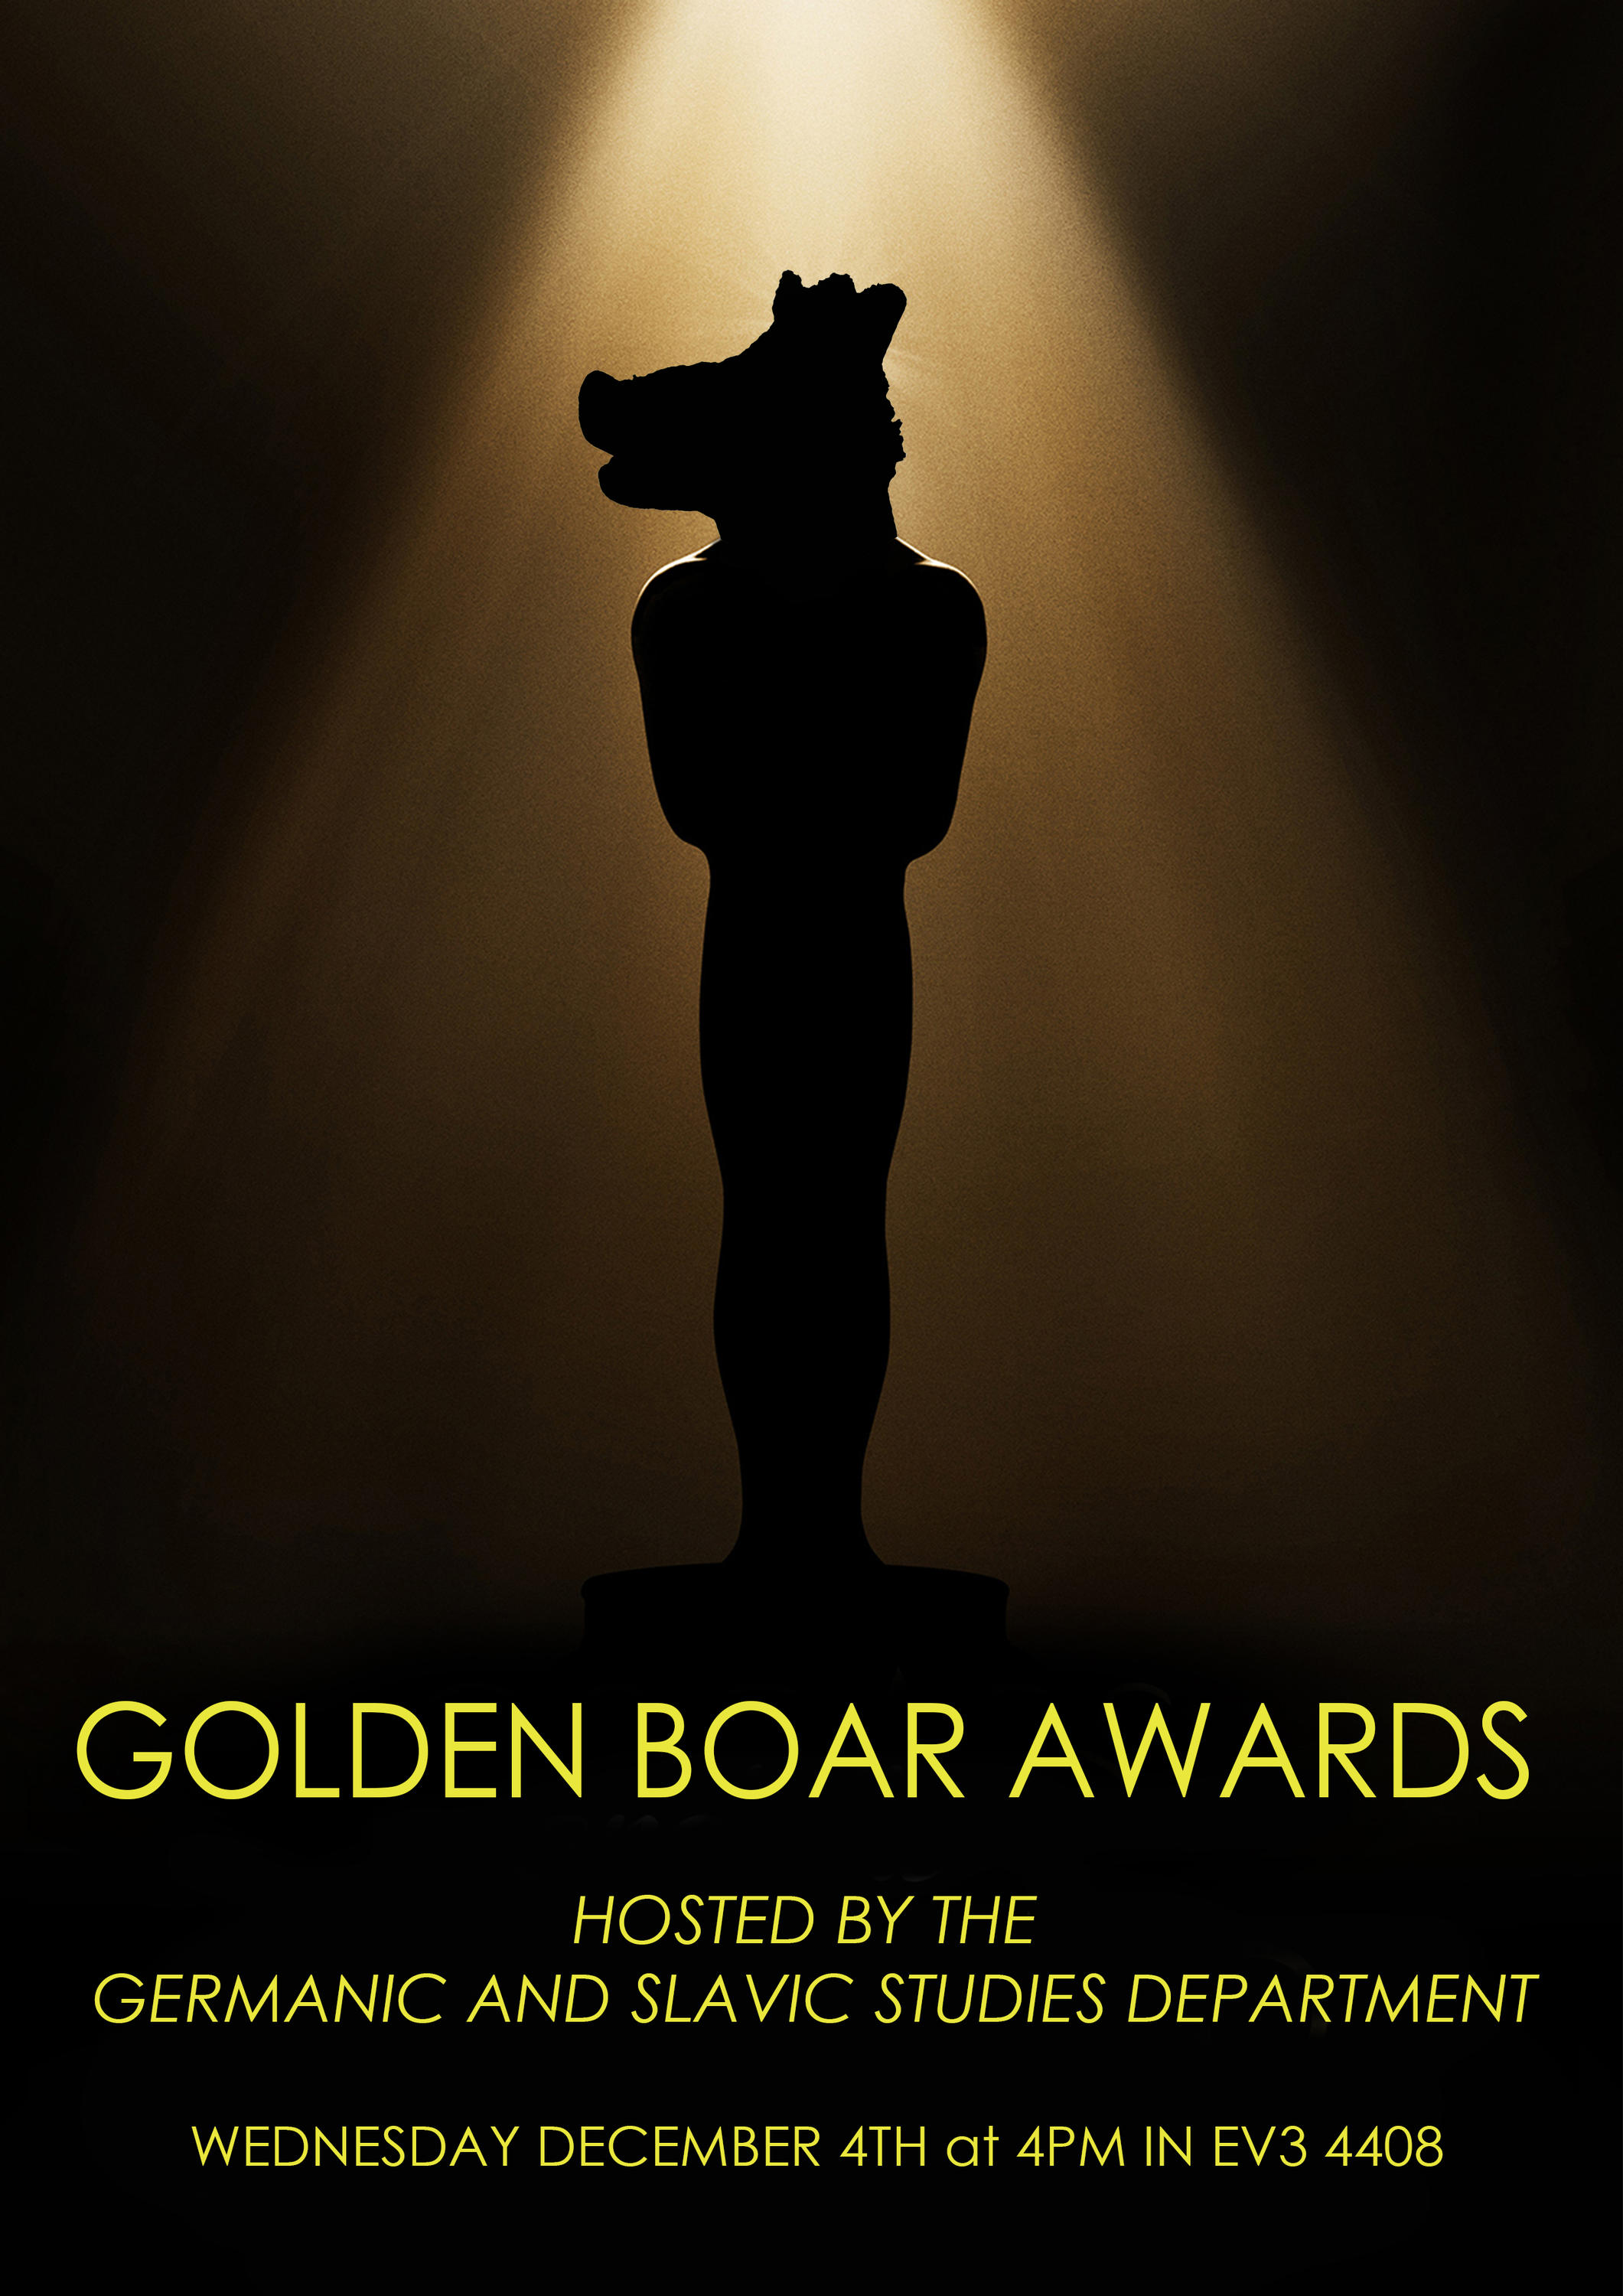 Golden Boar Award